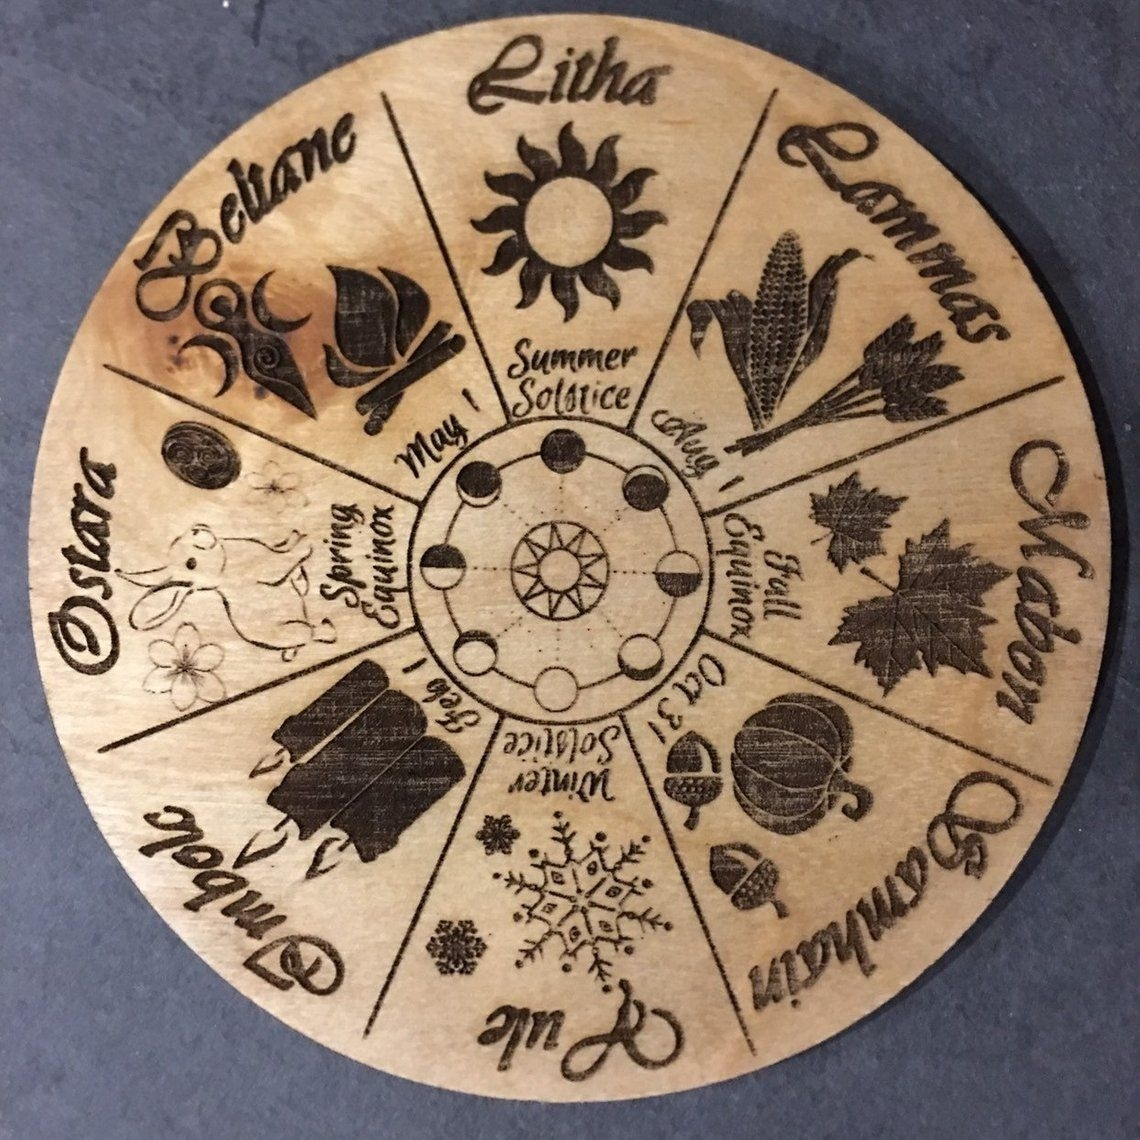 Sabbat Wheel Of The Year Witch Calendar Crystal Grid Altar   Etsy   Sabbats, Witchy Crafts